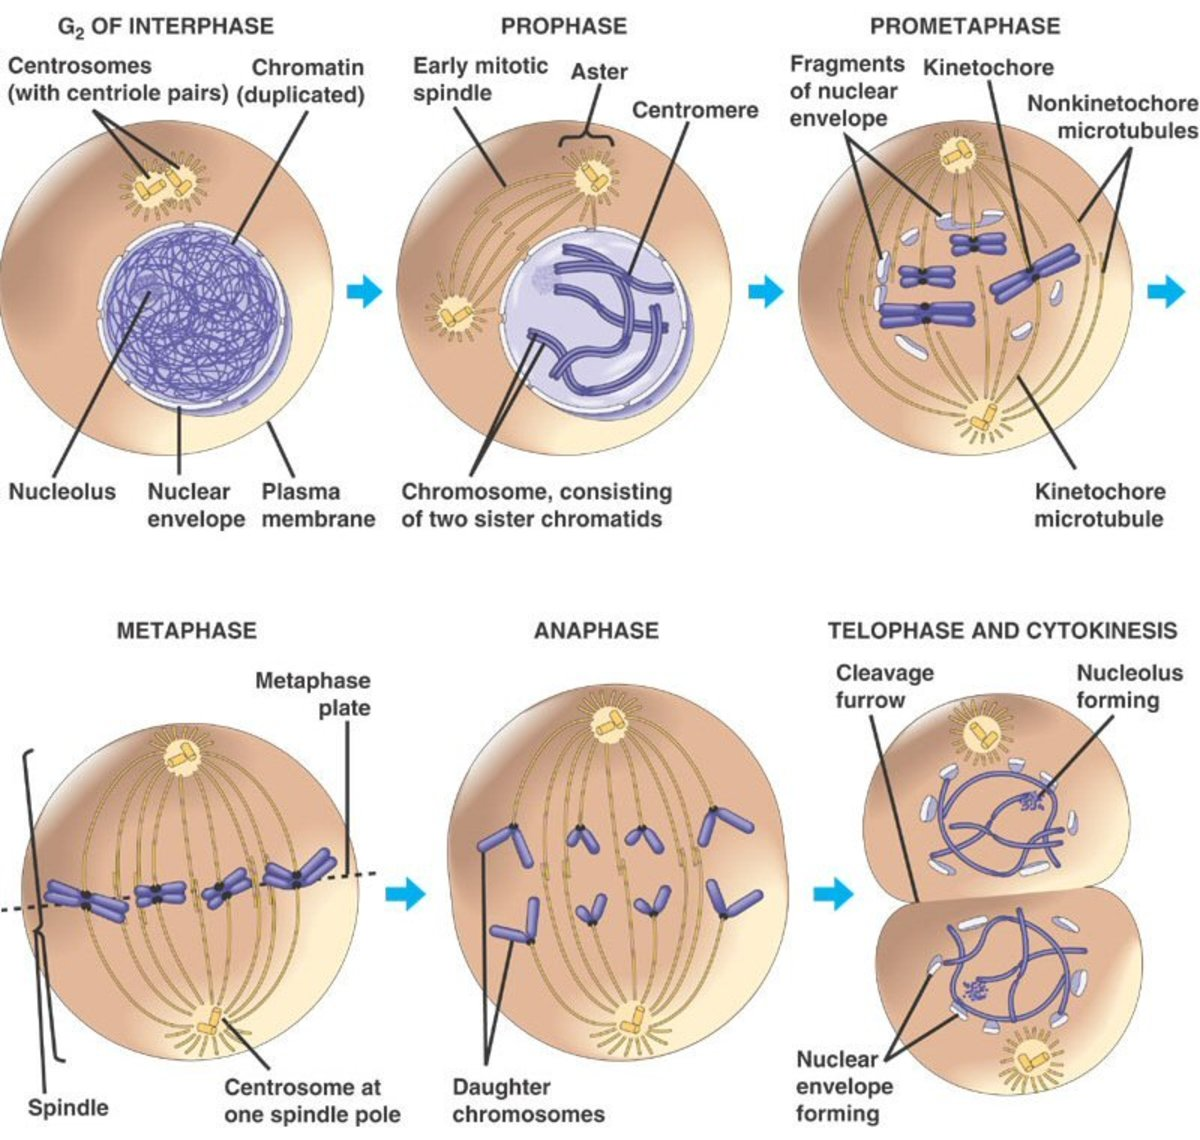 stages of the cell cycle mitosis metaphase anaphase